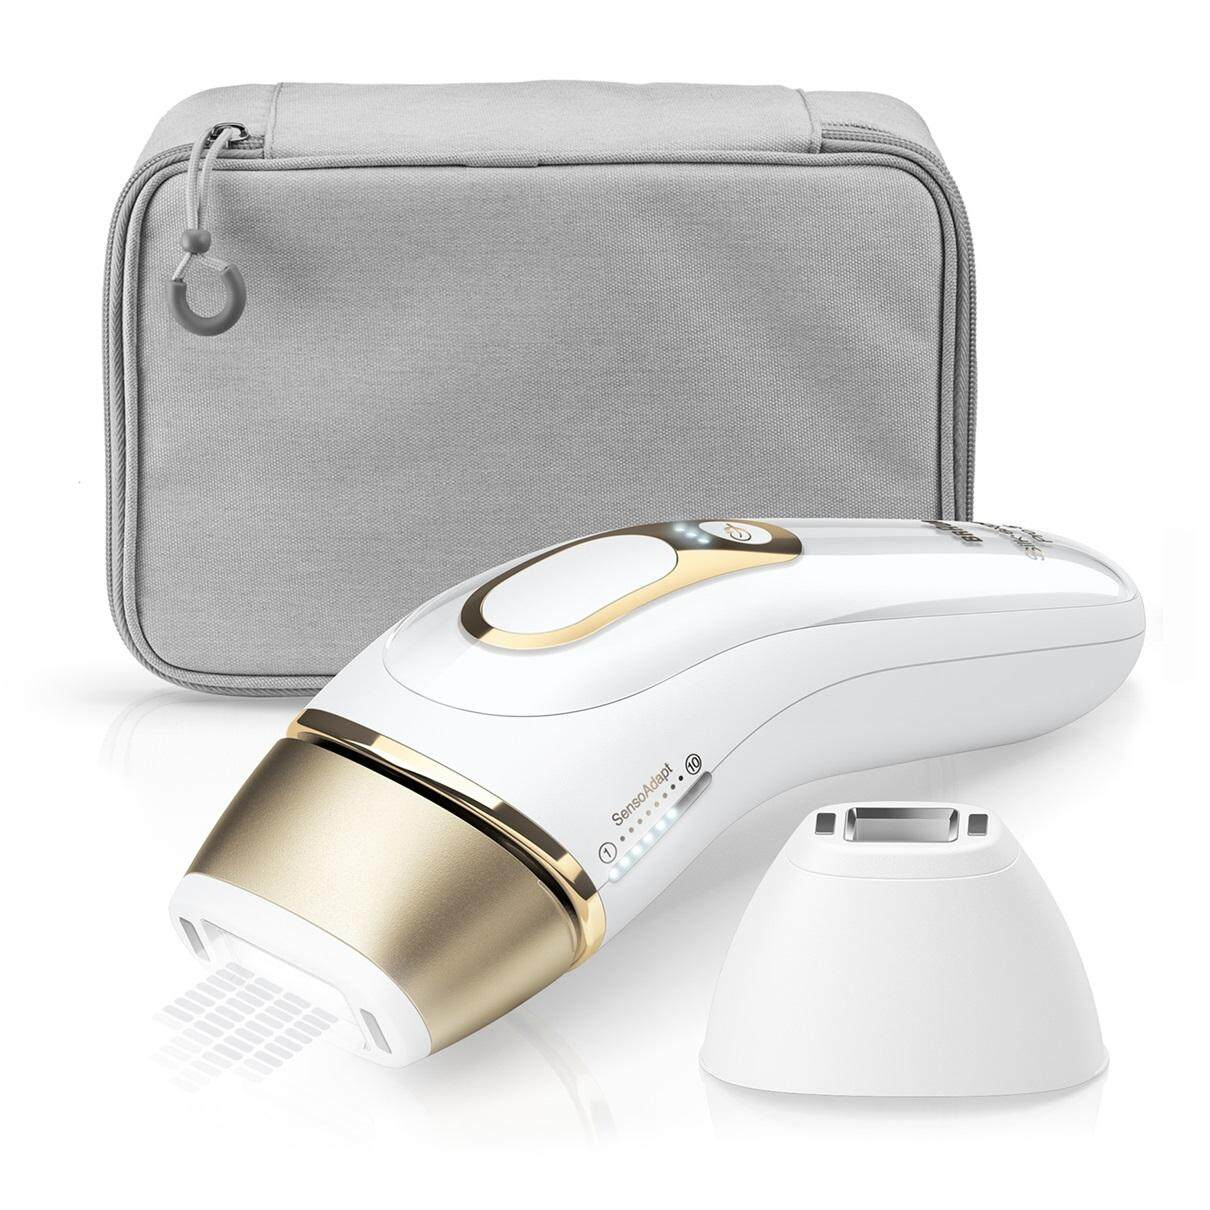 Braun Ipl Silk·expert Pro 5 Pl5117 Latest Generation Ipl 400,000 Flashes, Permanent Visible Hair Removal, With Premium Pouch, Venus Razor And Precision Head.